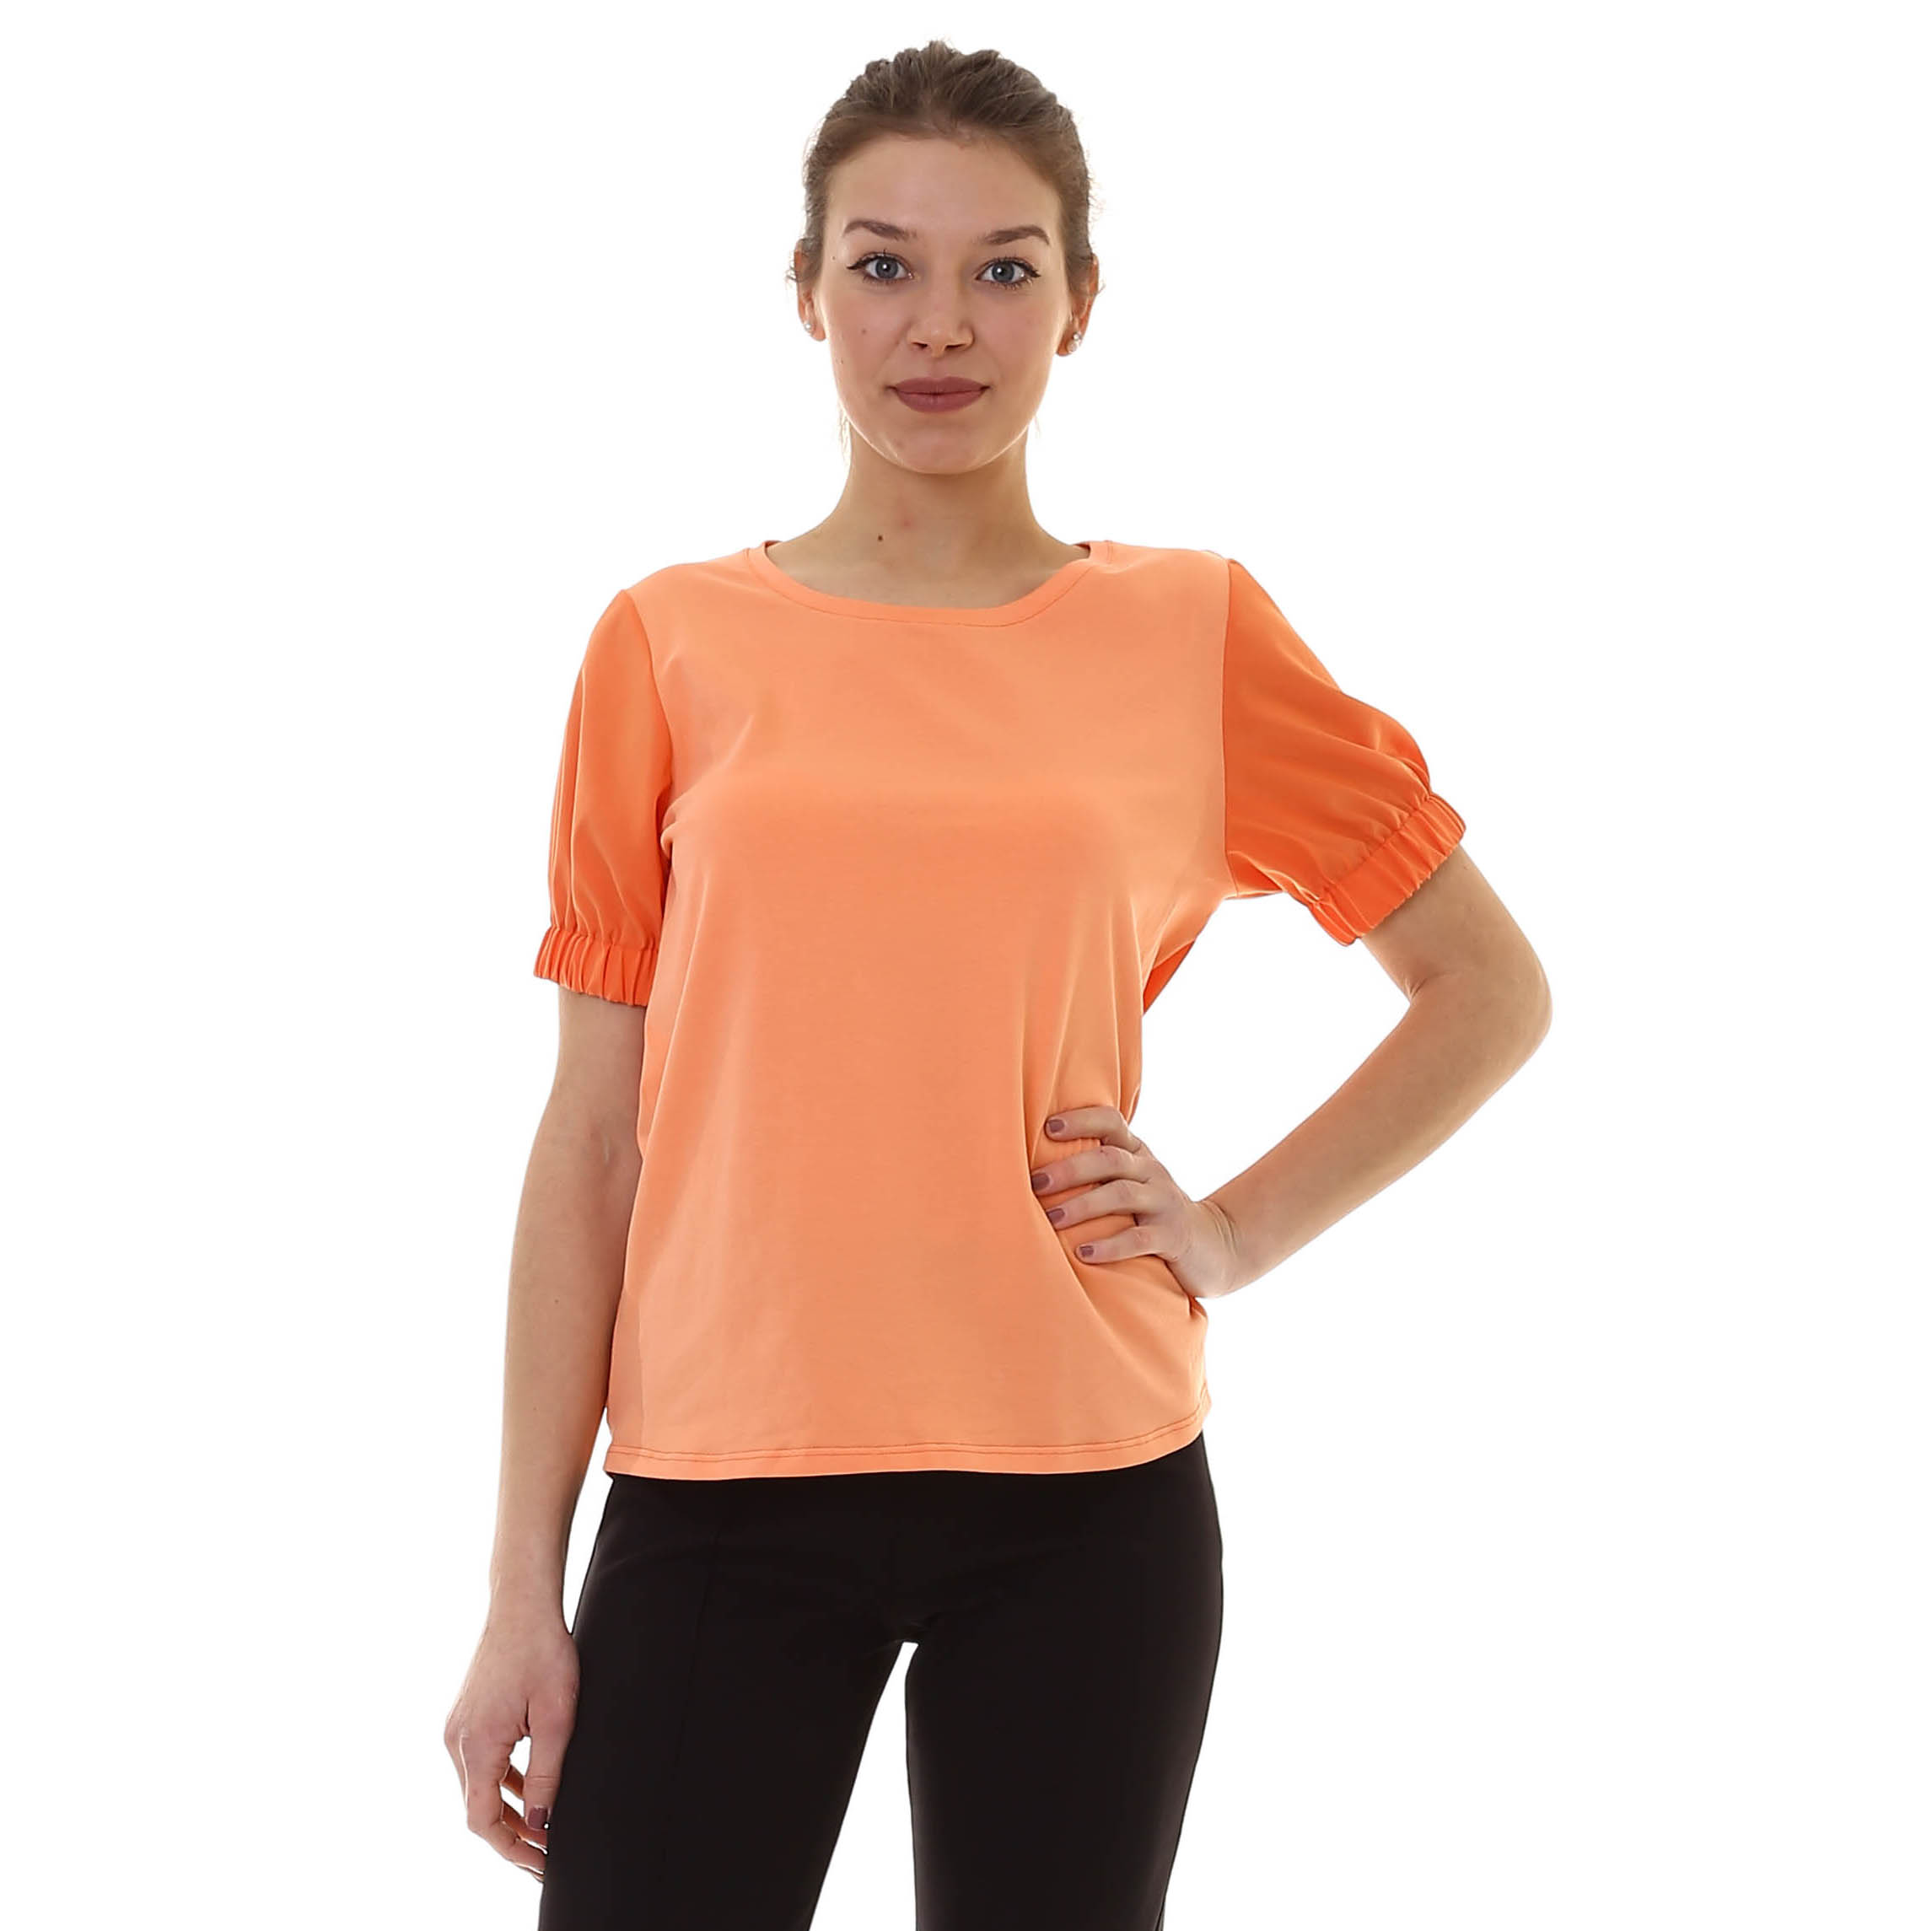 CARACTERE CAMICIA JERSEY